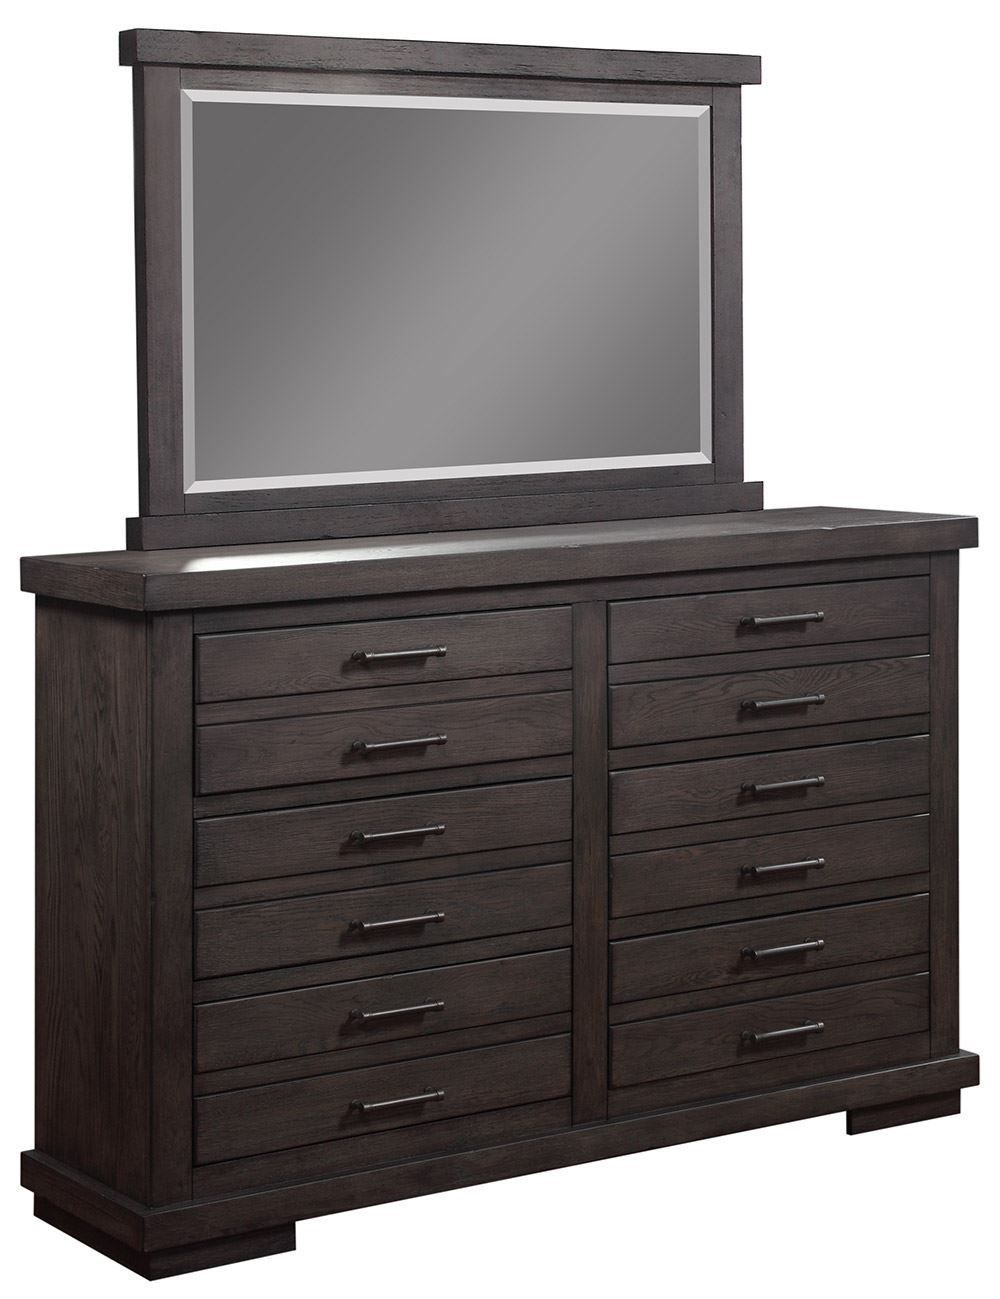 Picture of Revolution Dresser and Mirror